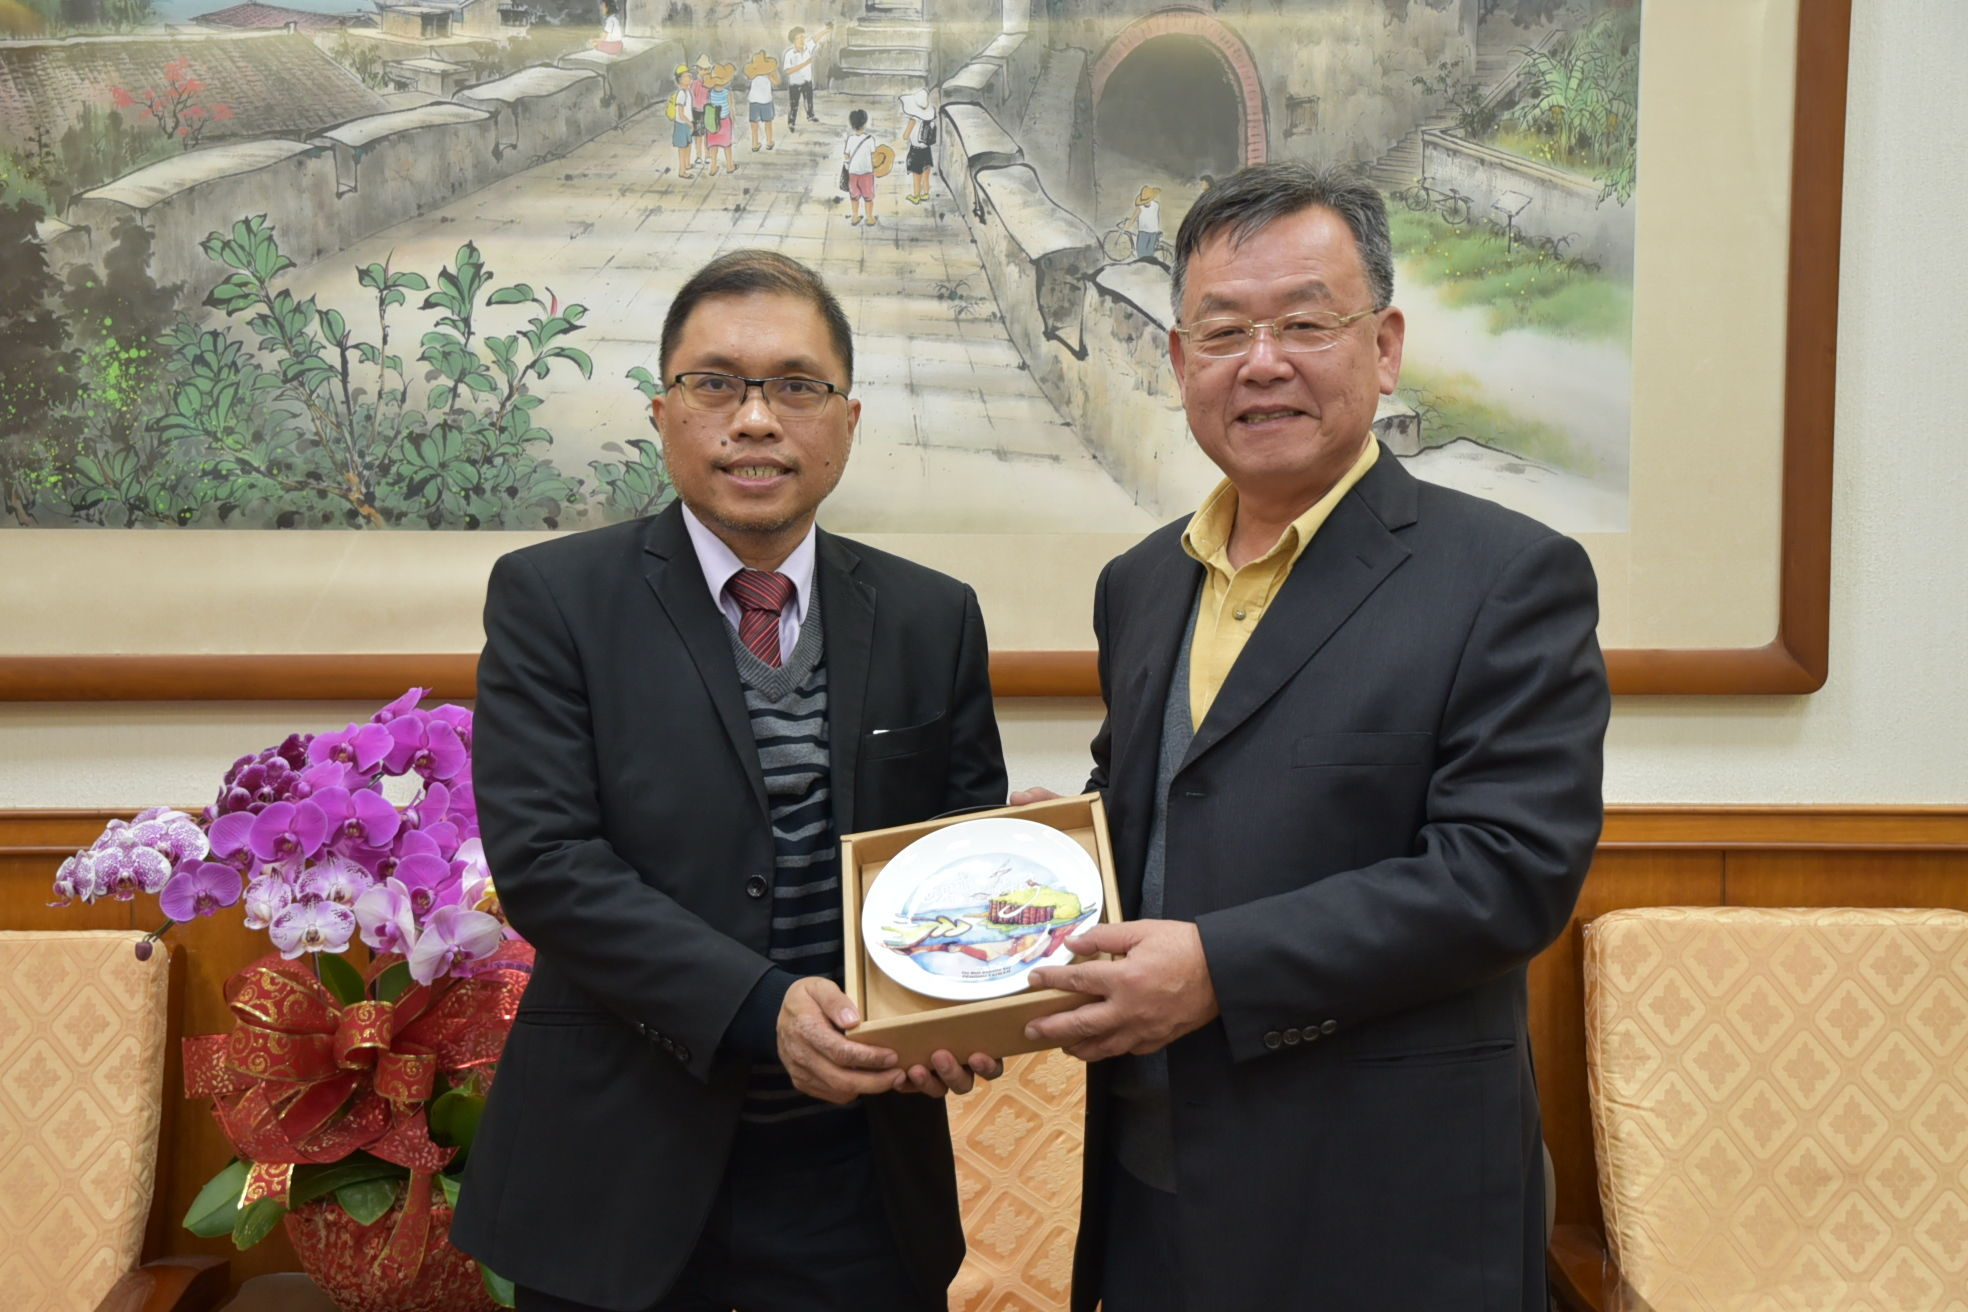 Gilberto Lauengco, Vice Chairman of the Philippine Office in Taiwan, paid a courtesy call on Lai Fengwei